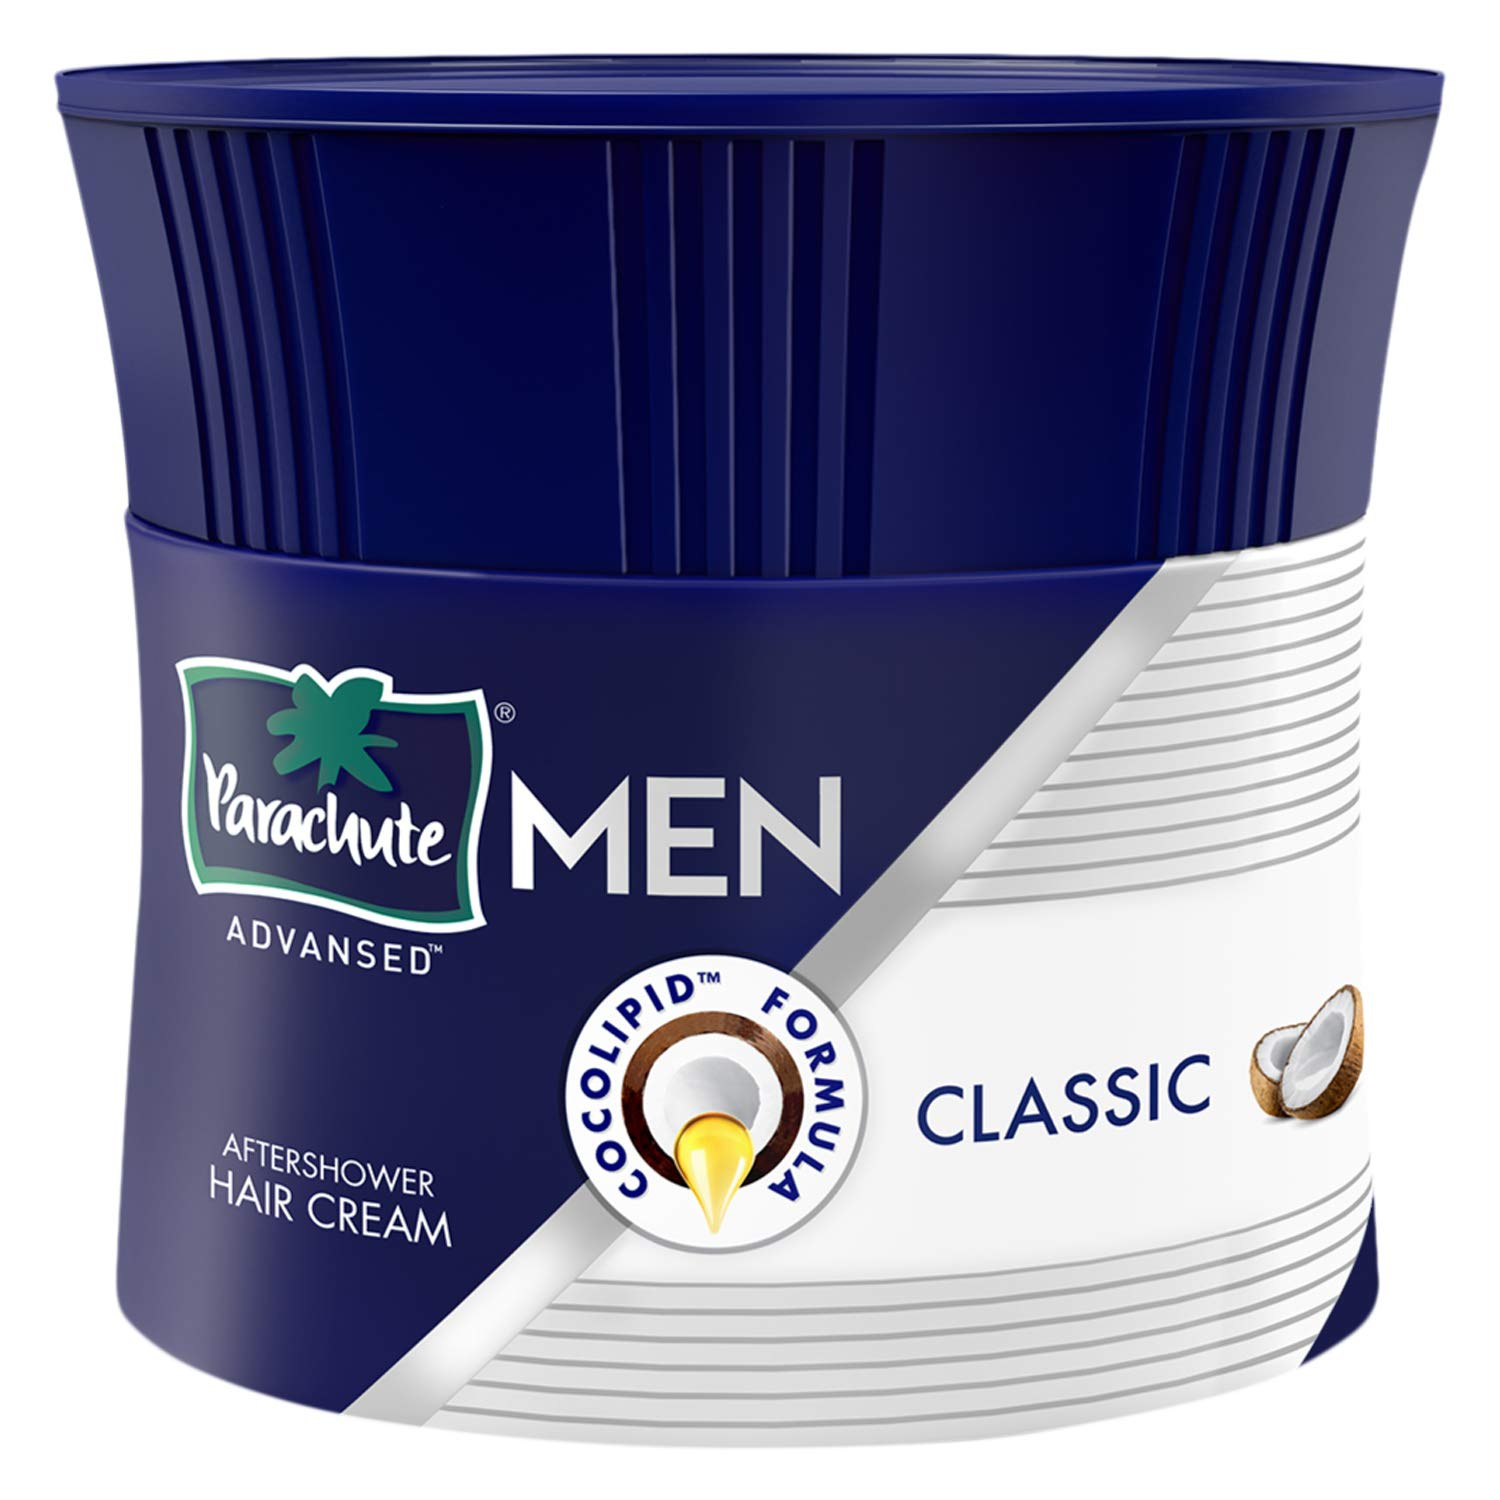 Parachute After Shower Classic Hair Styling Cream For Men